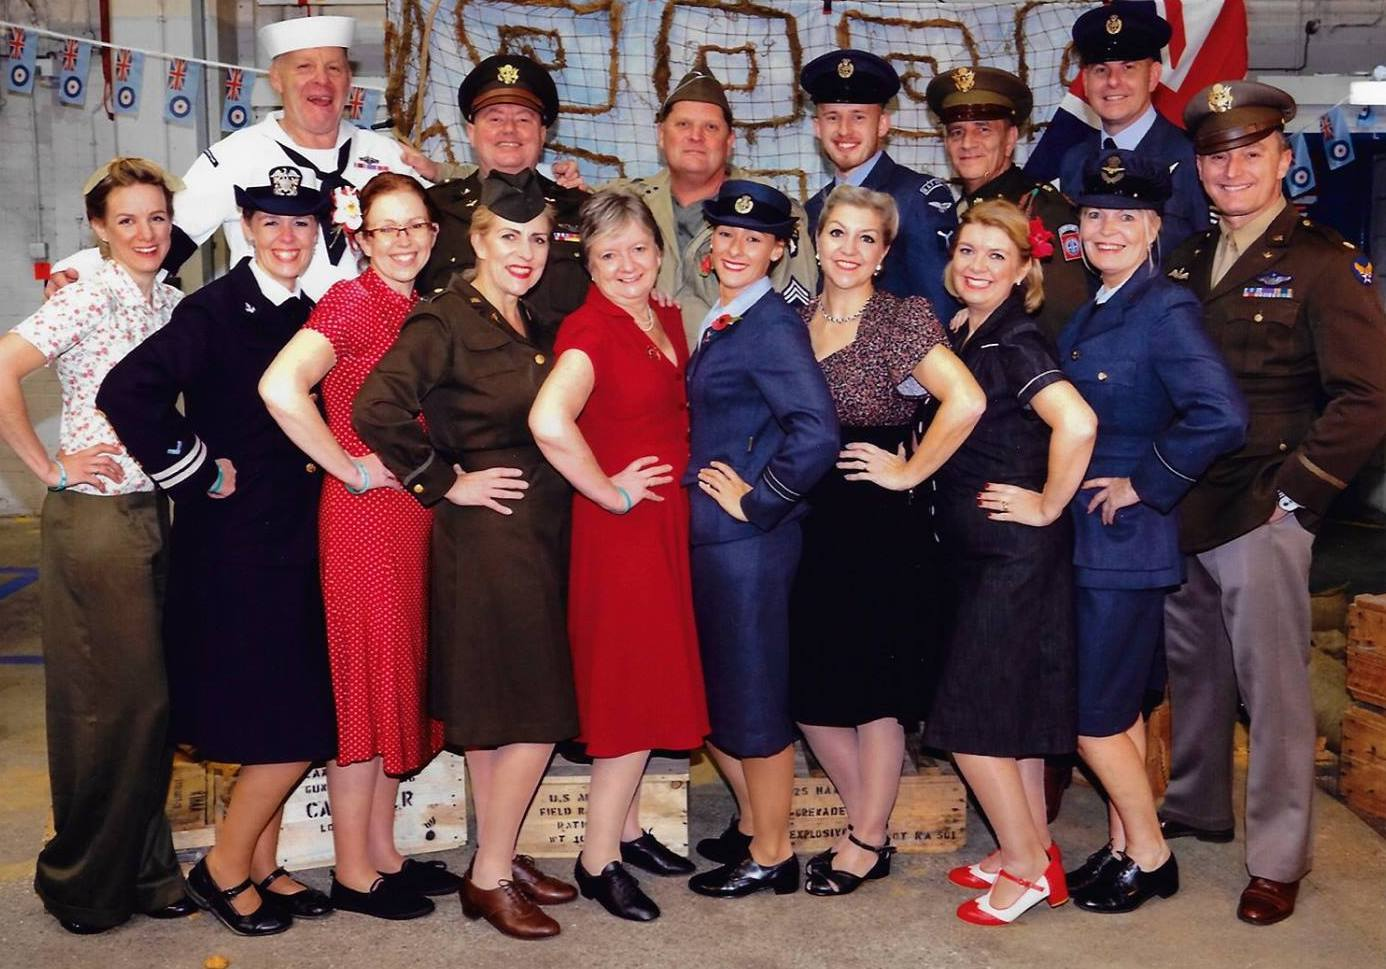 Group of 1940s and 1950s male and female dancers in wartime outfits and uniforms